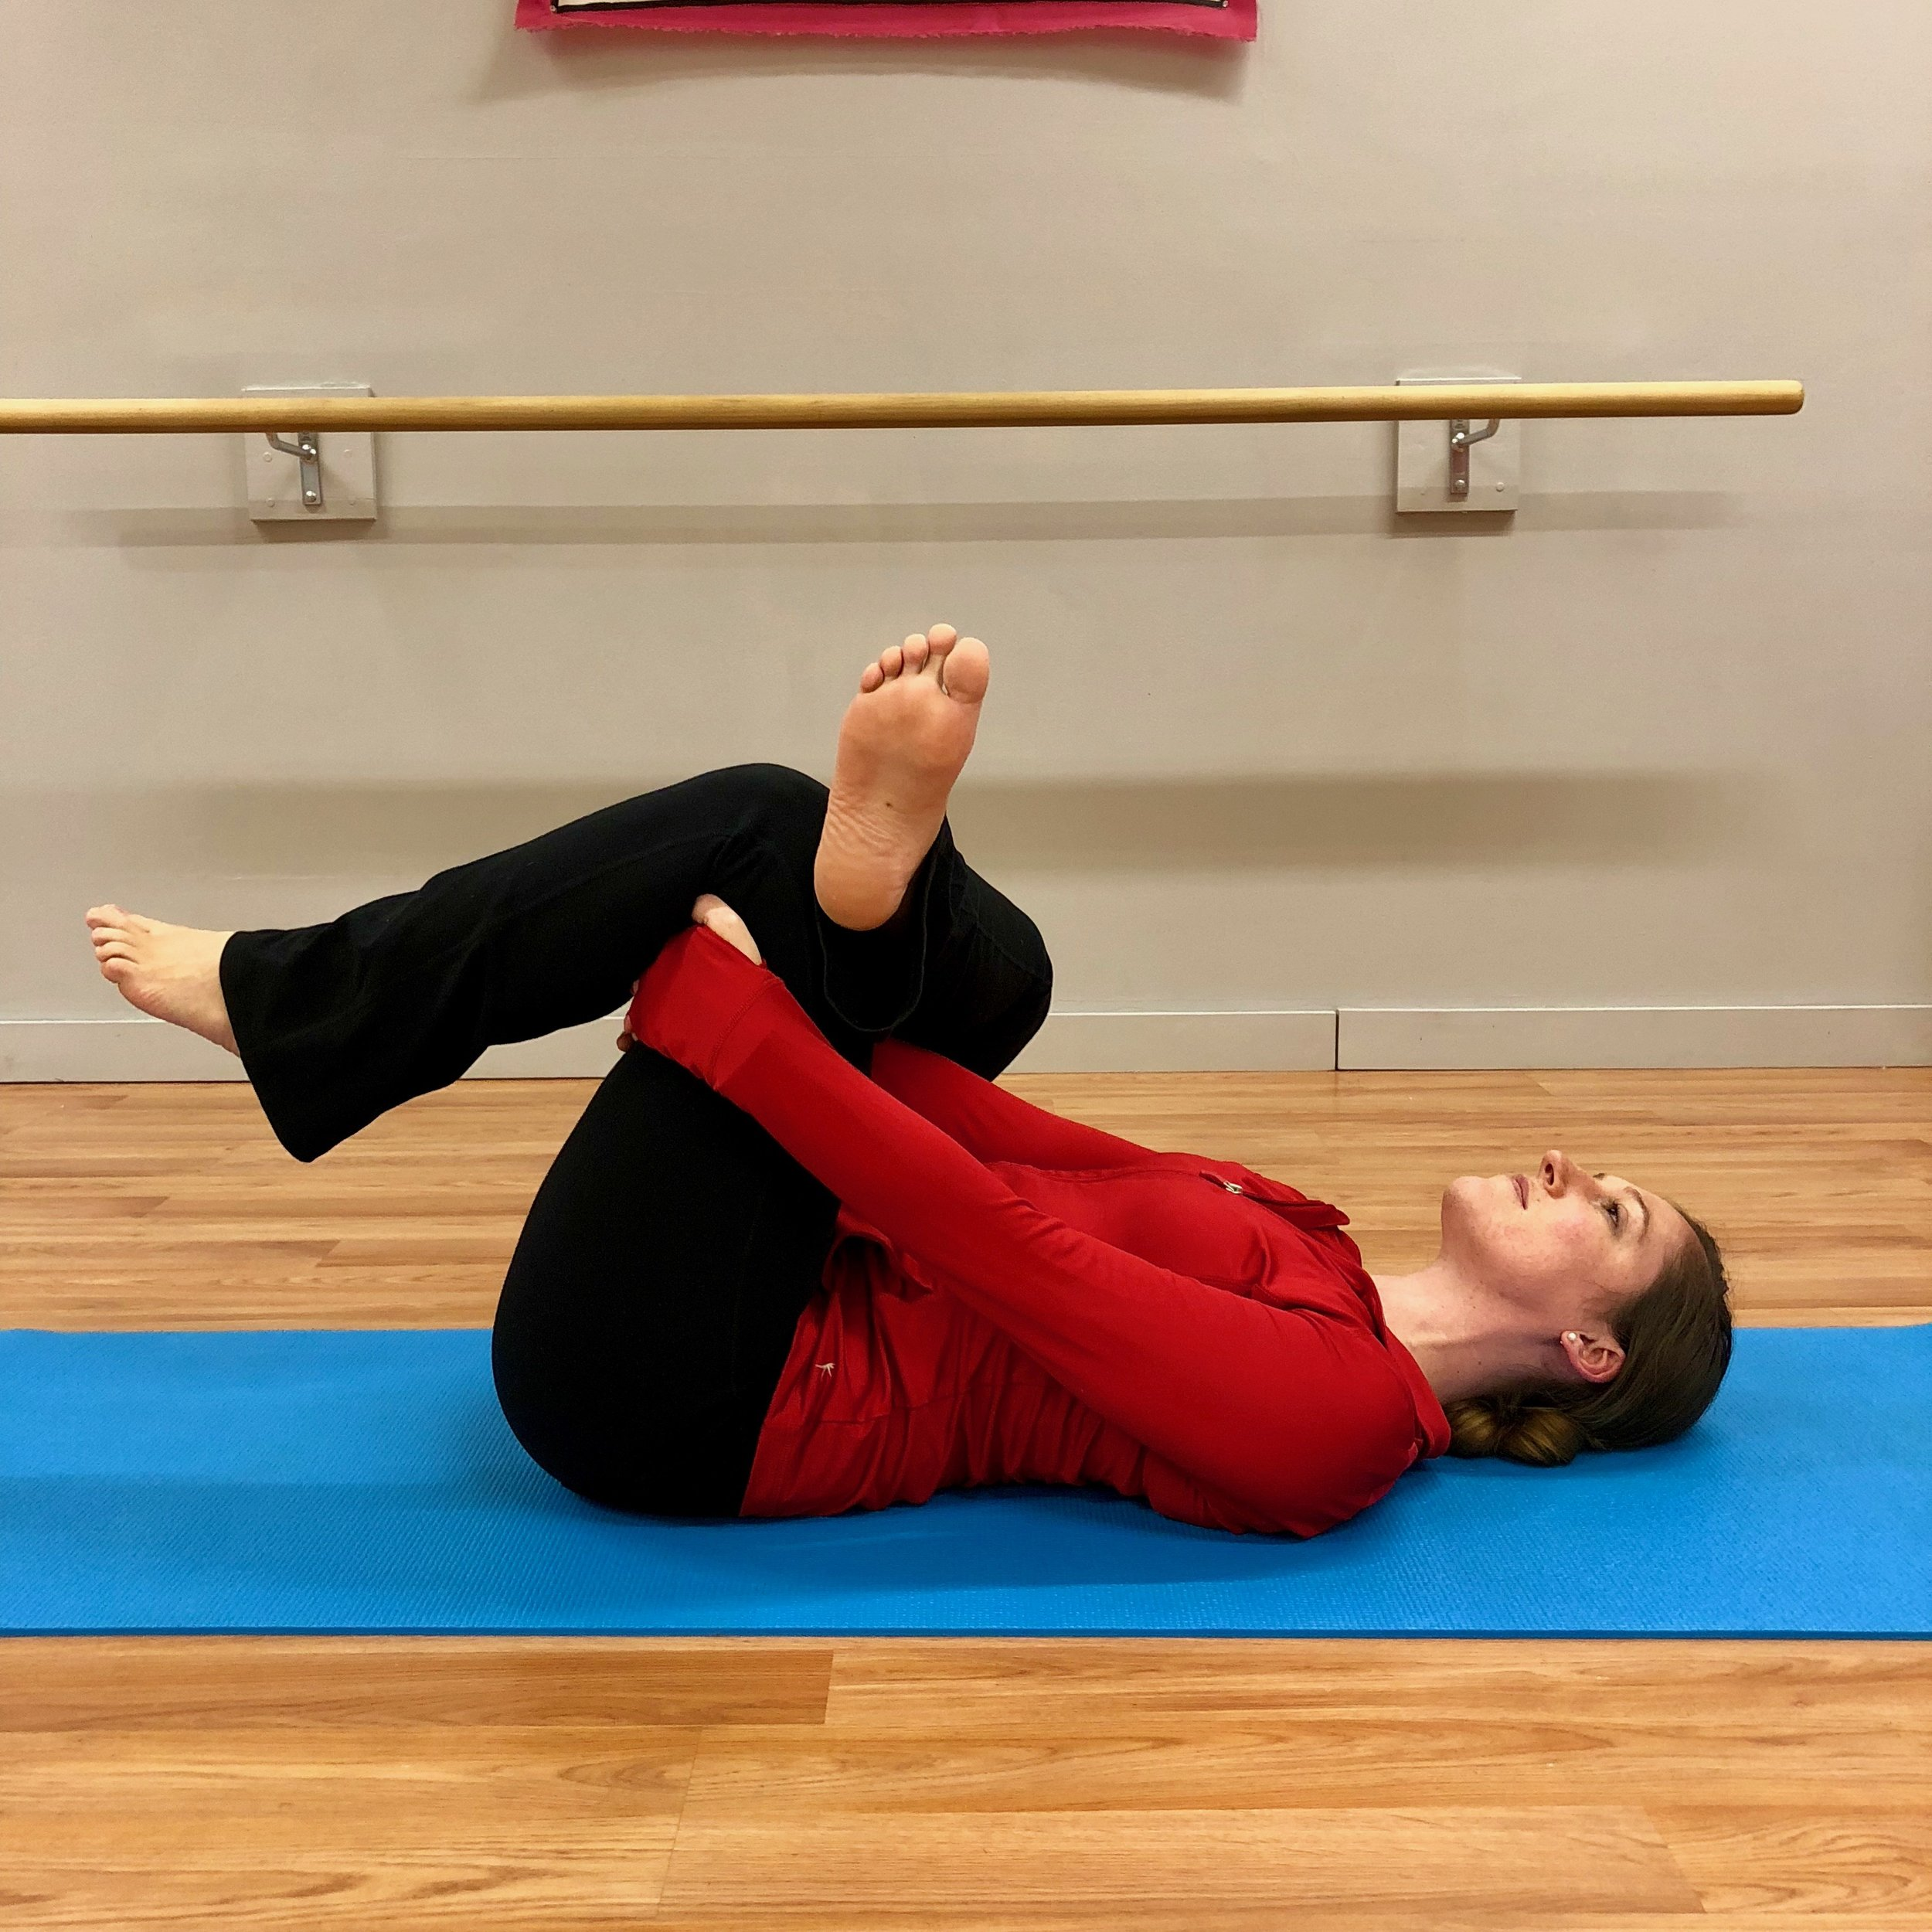 "#4 Glut/Piriformis Stretch: Cross one leg over the other in a figure-4 pattern, ""thread the needle"" and grab your other leg and hug it to your chest. Hold 1 minute each side."